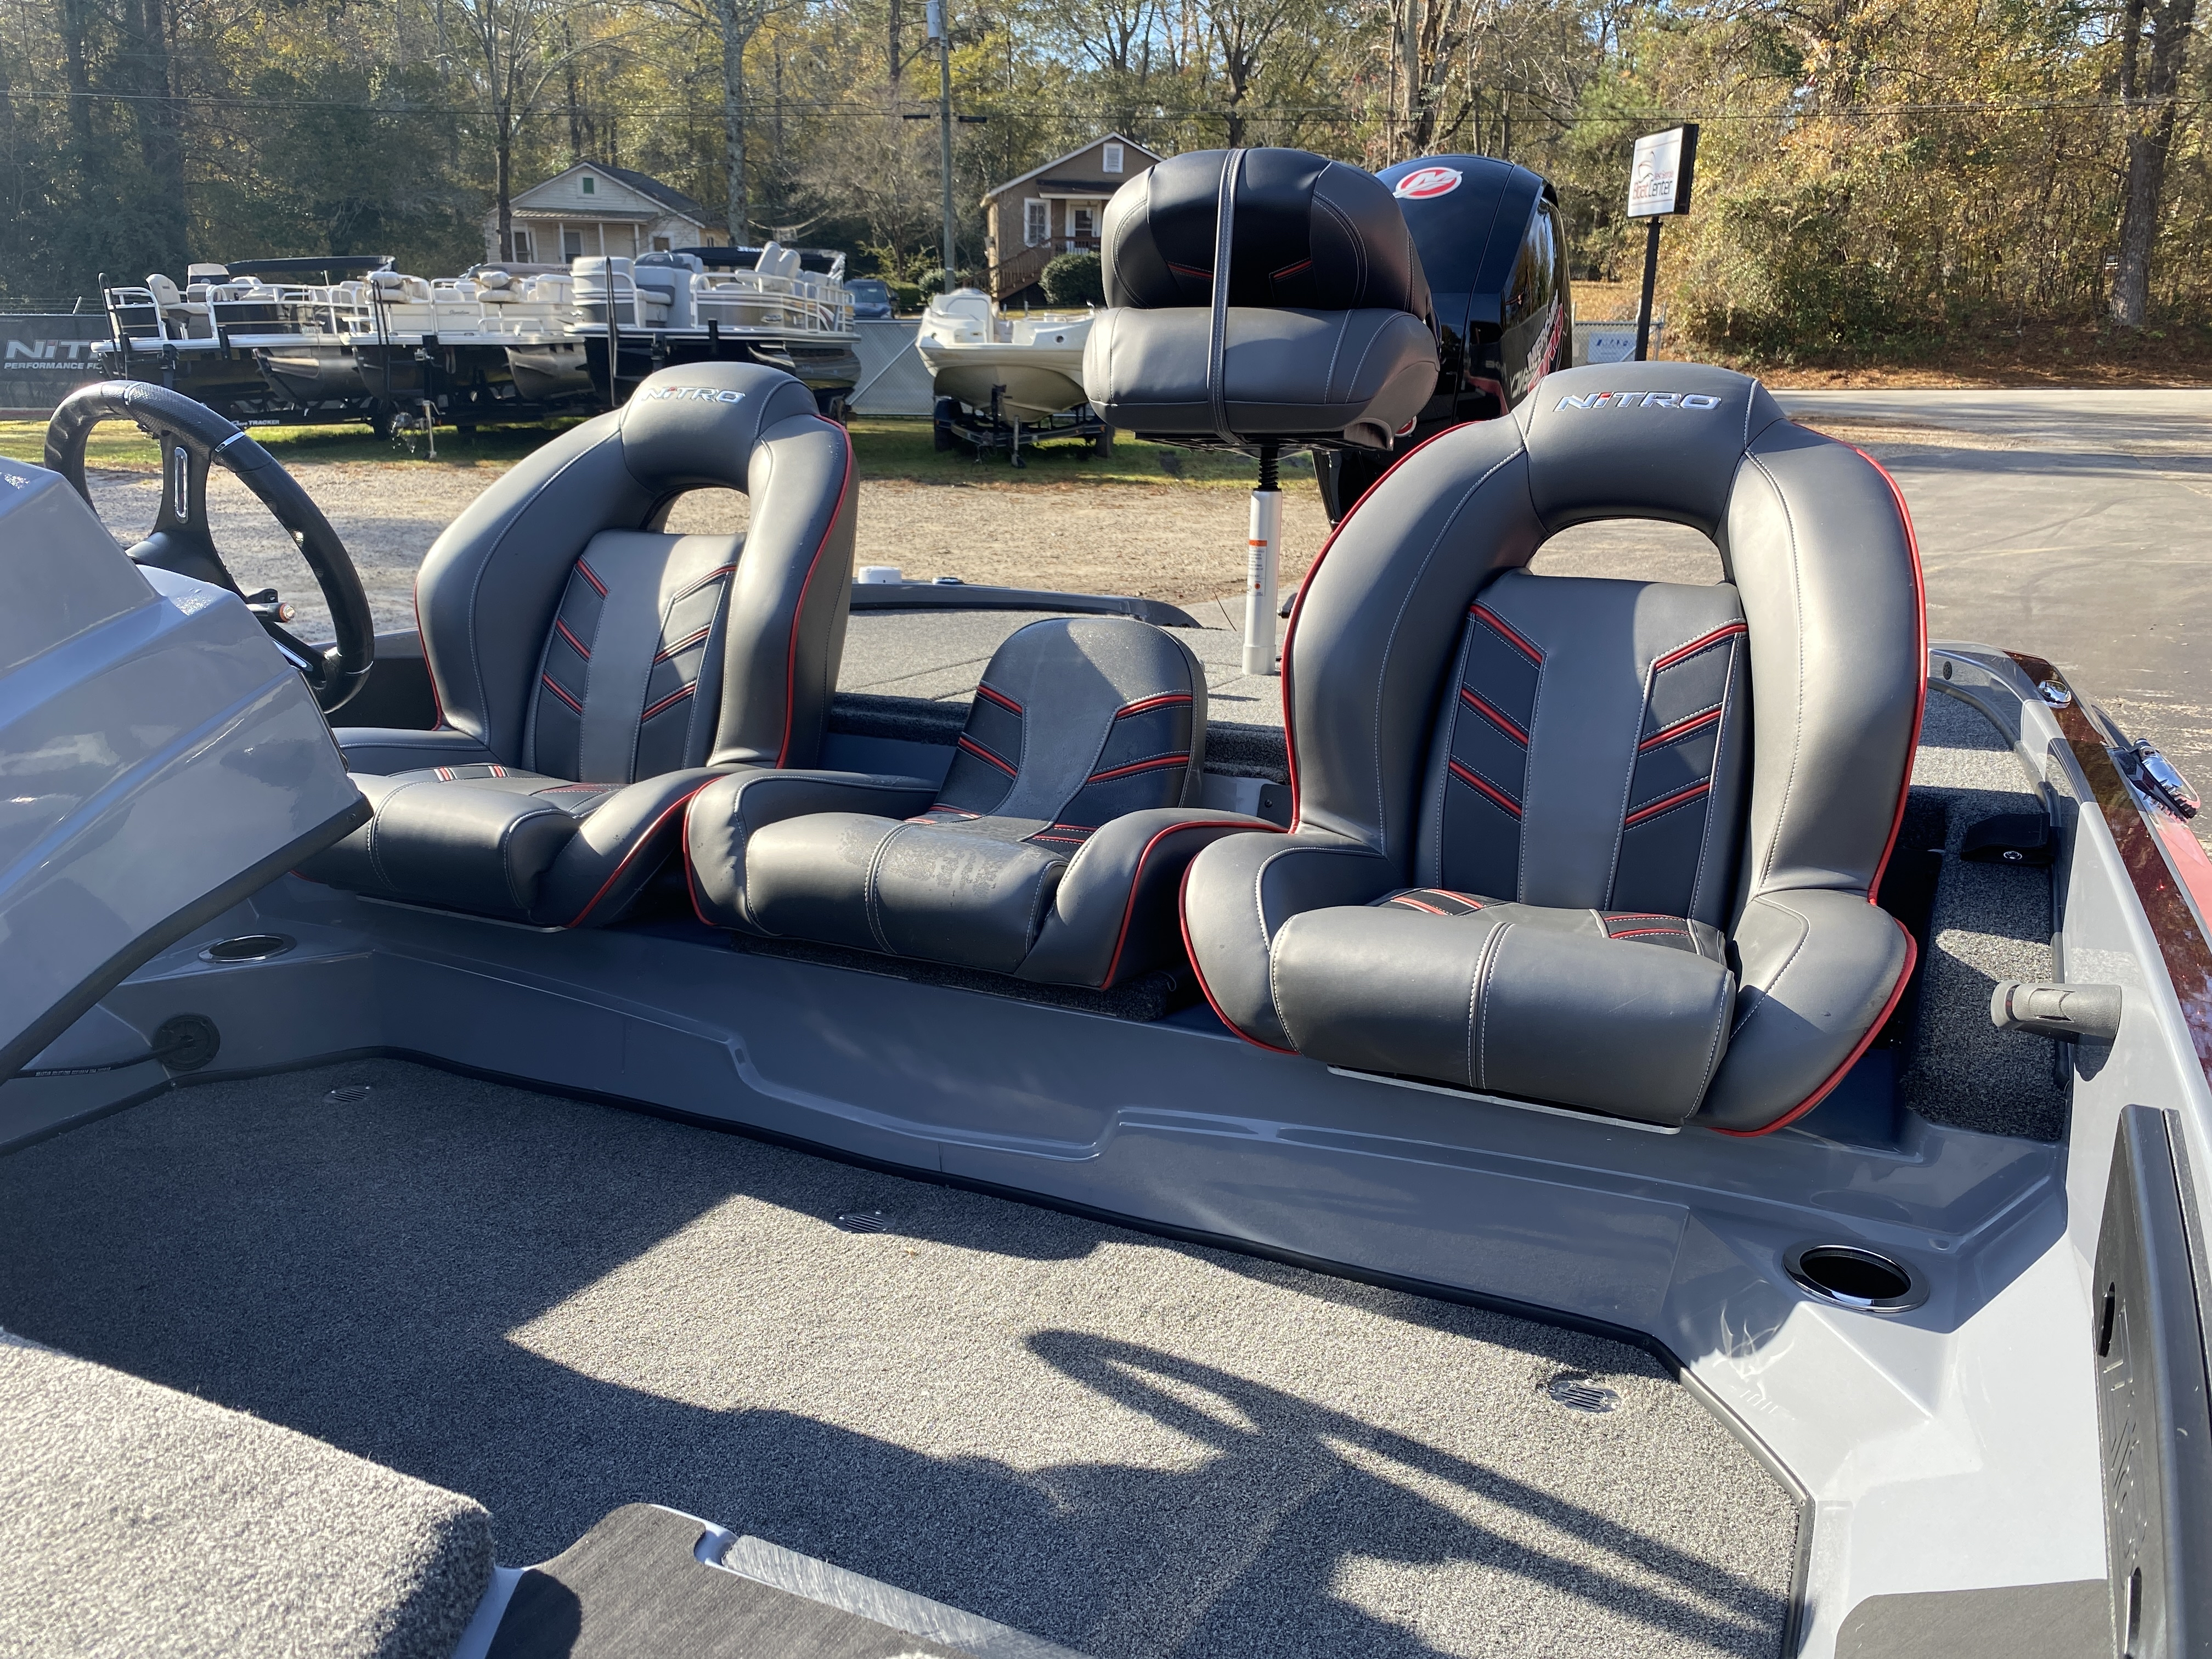 2021 Nitro boat for sale, model of the boat is Z18 H1 & Image # 15 of 28